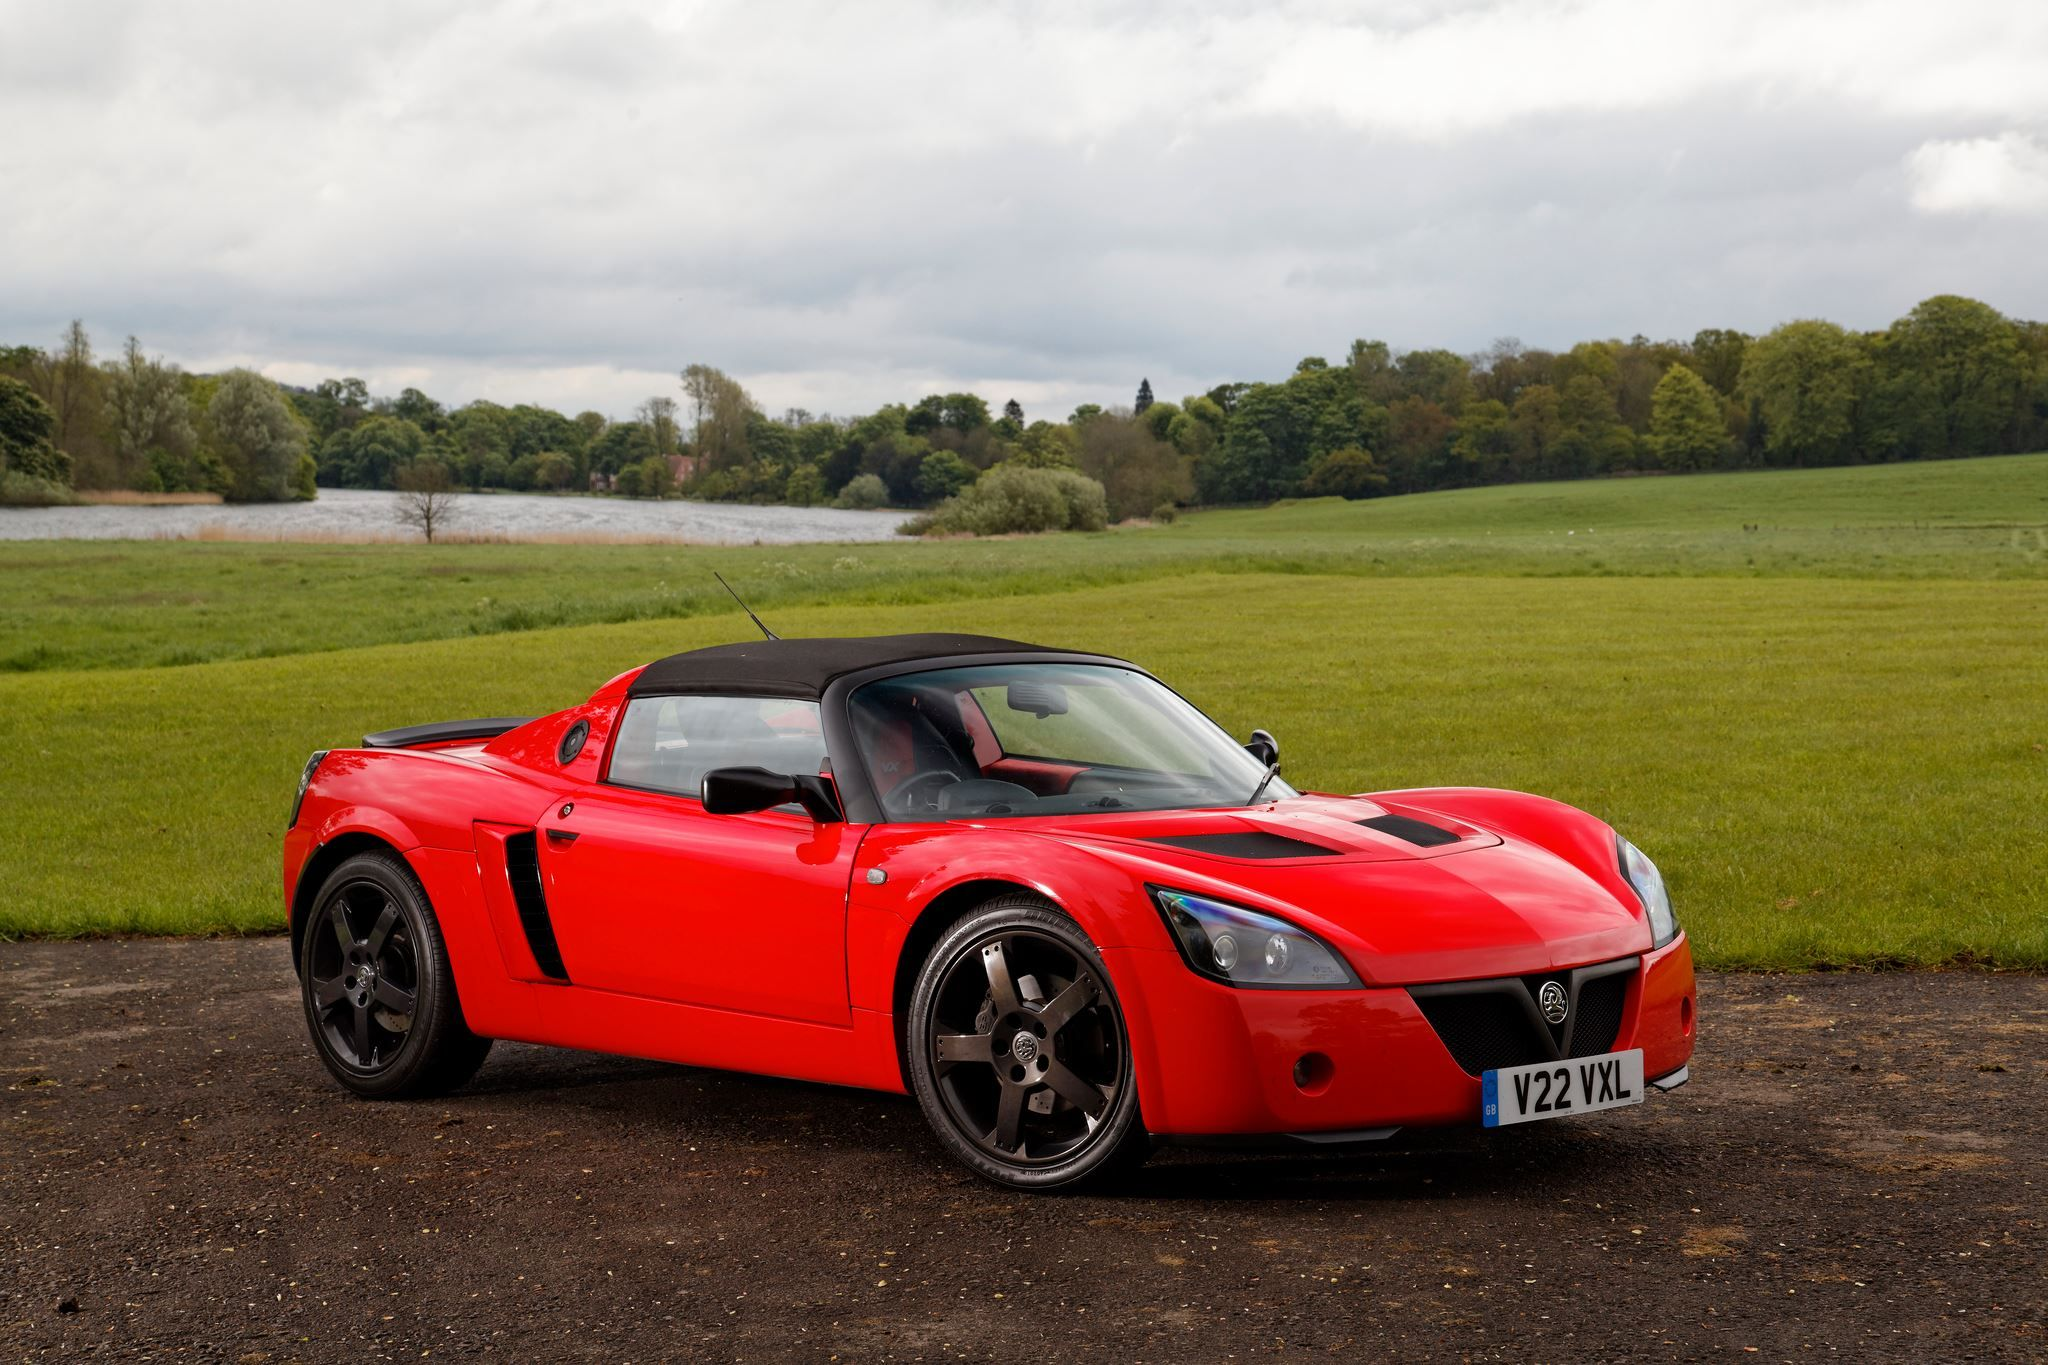 The classic Vauxhall VX220 has been voted into the Top 20 best used cars by MSN Cars UK